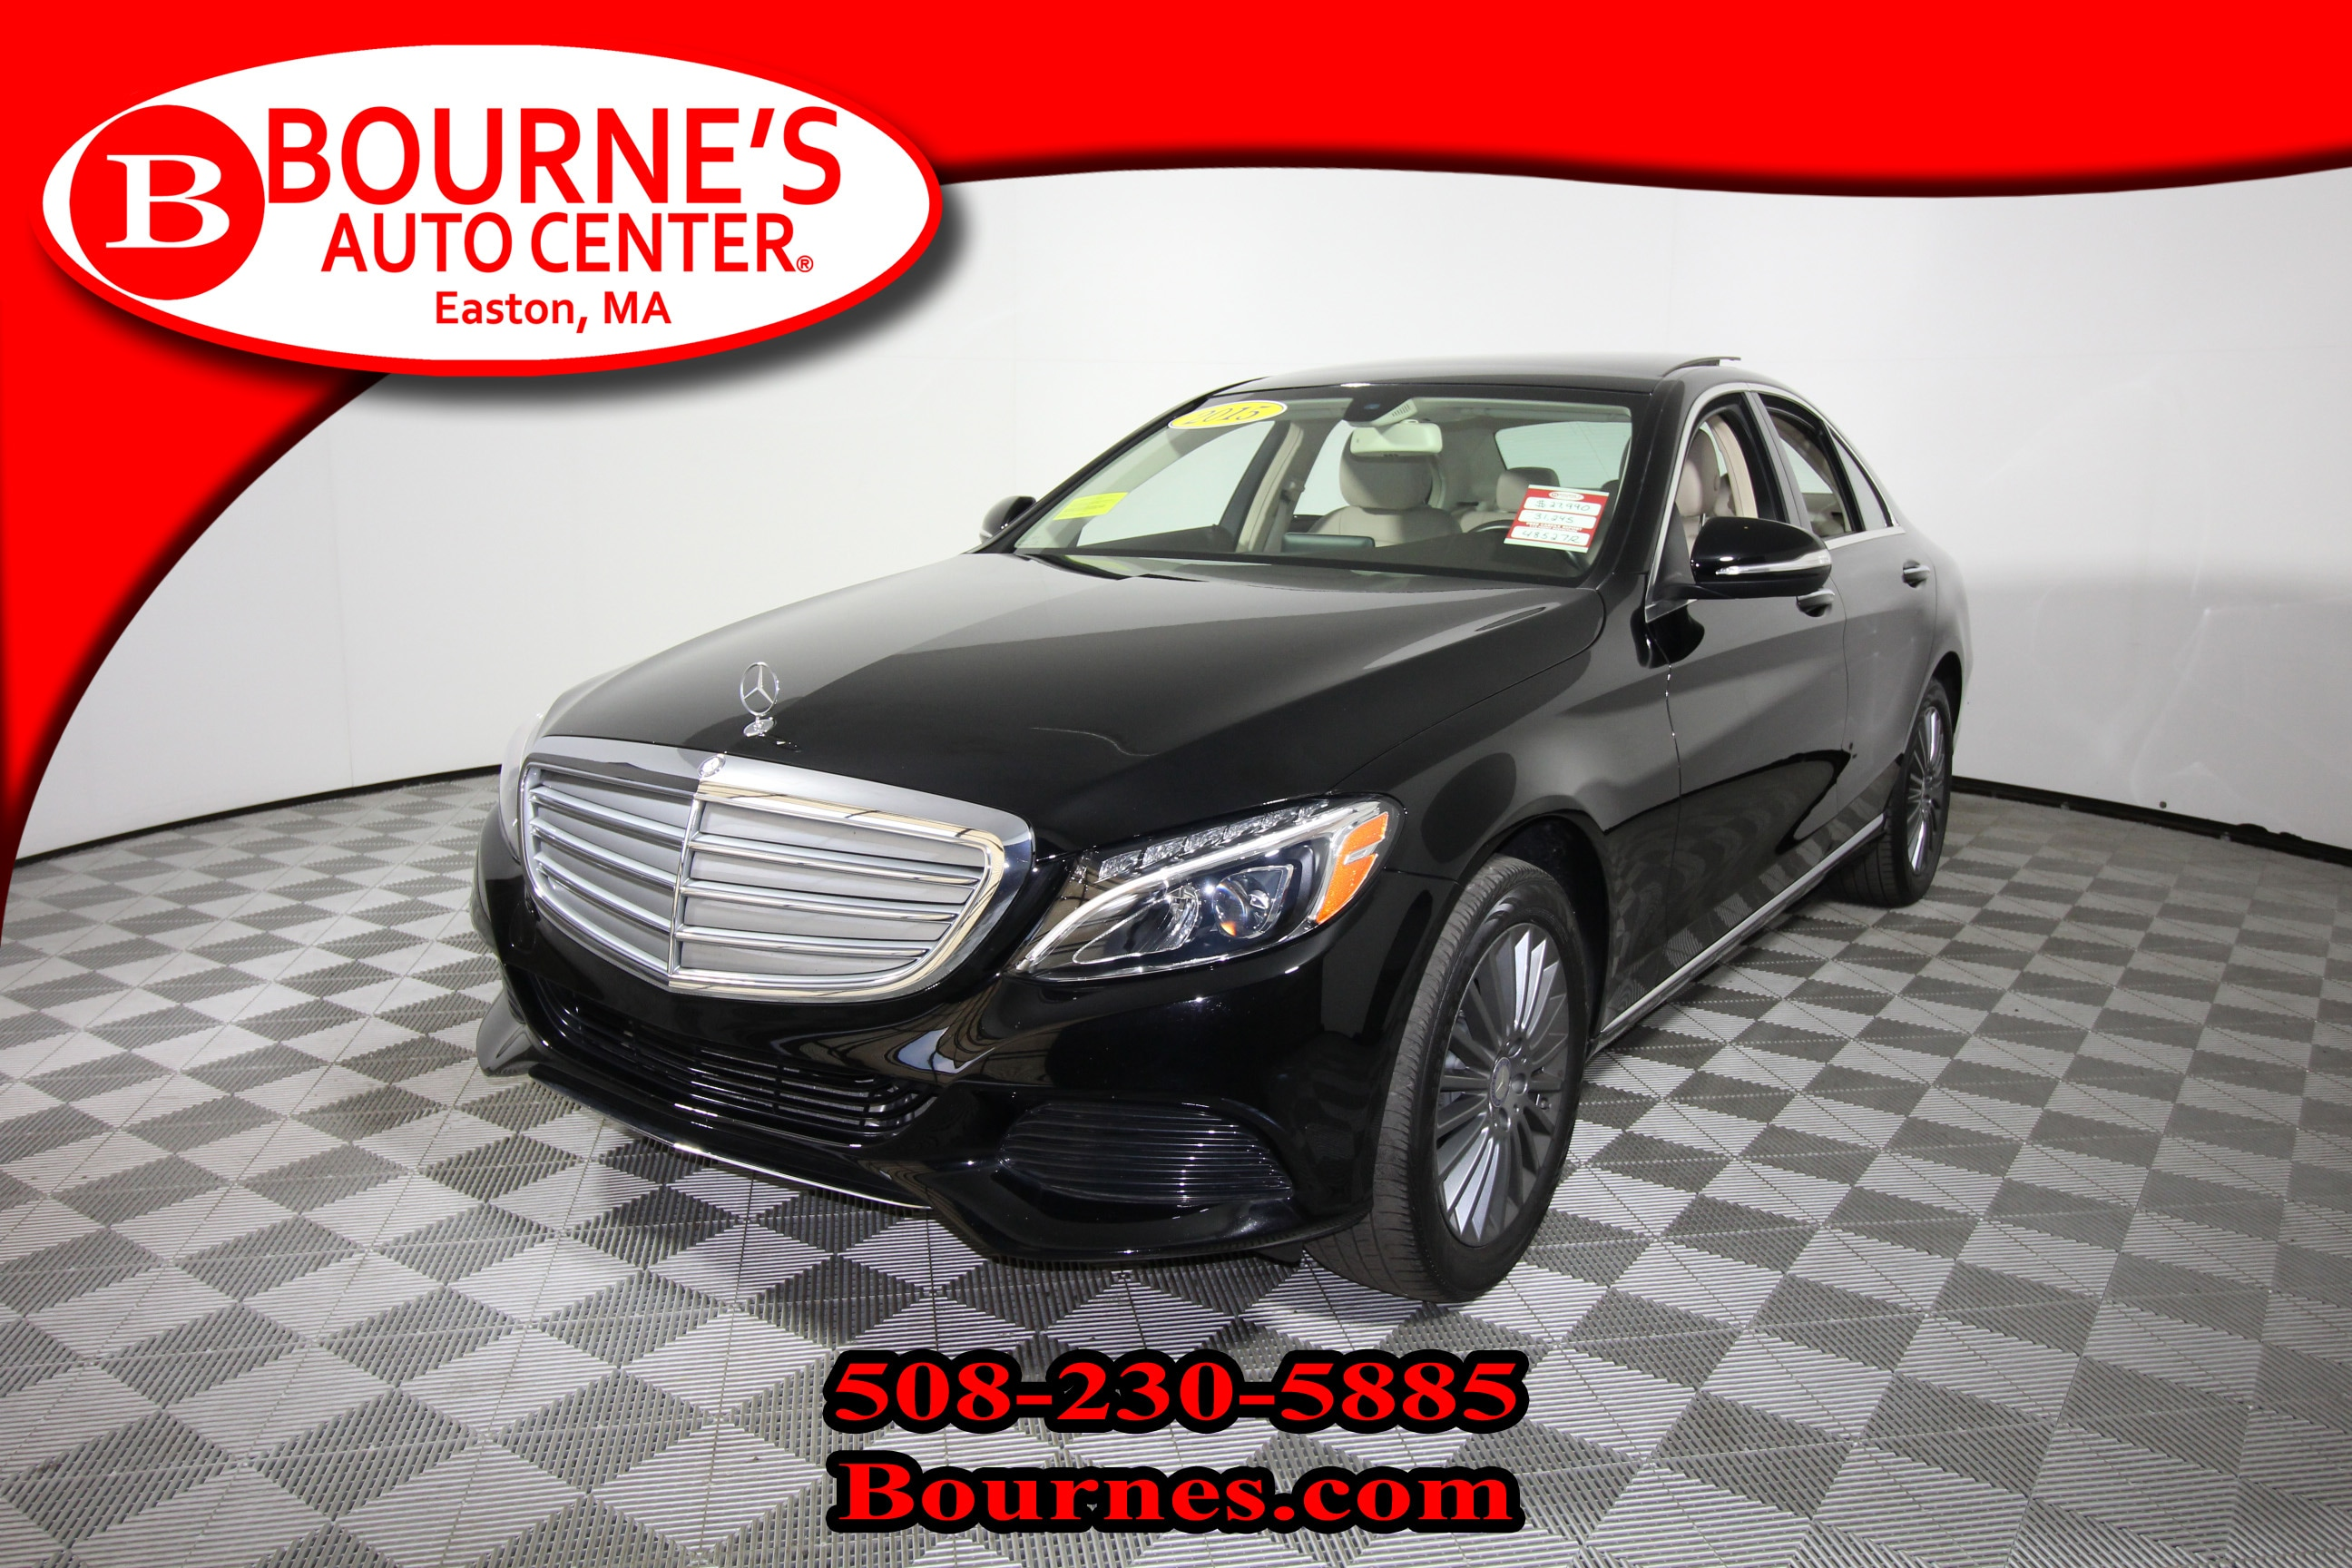 Used Mercedes Benz C Class For Sale Boston MA CarGurus